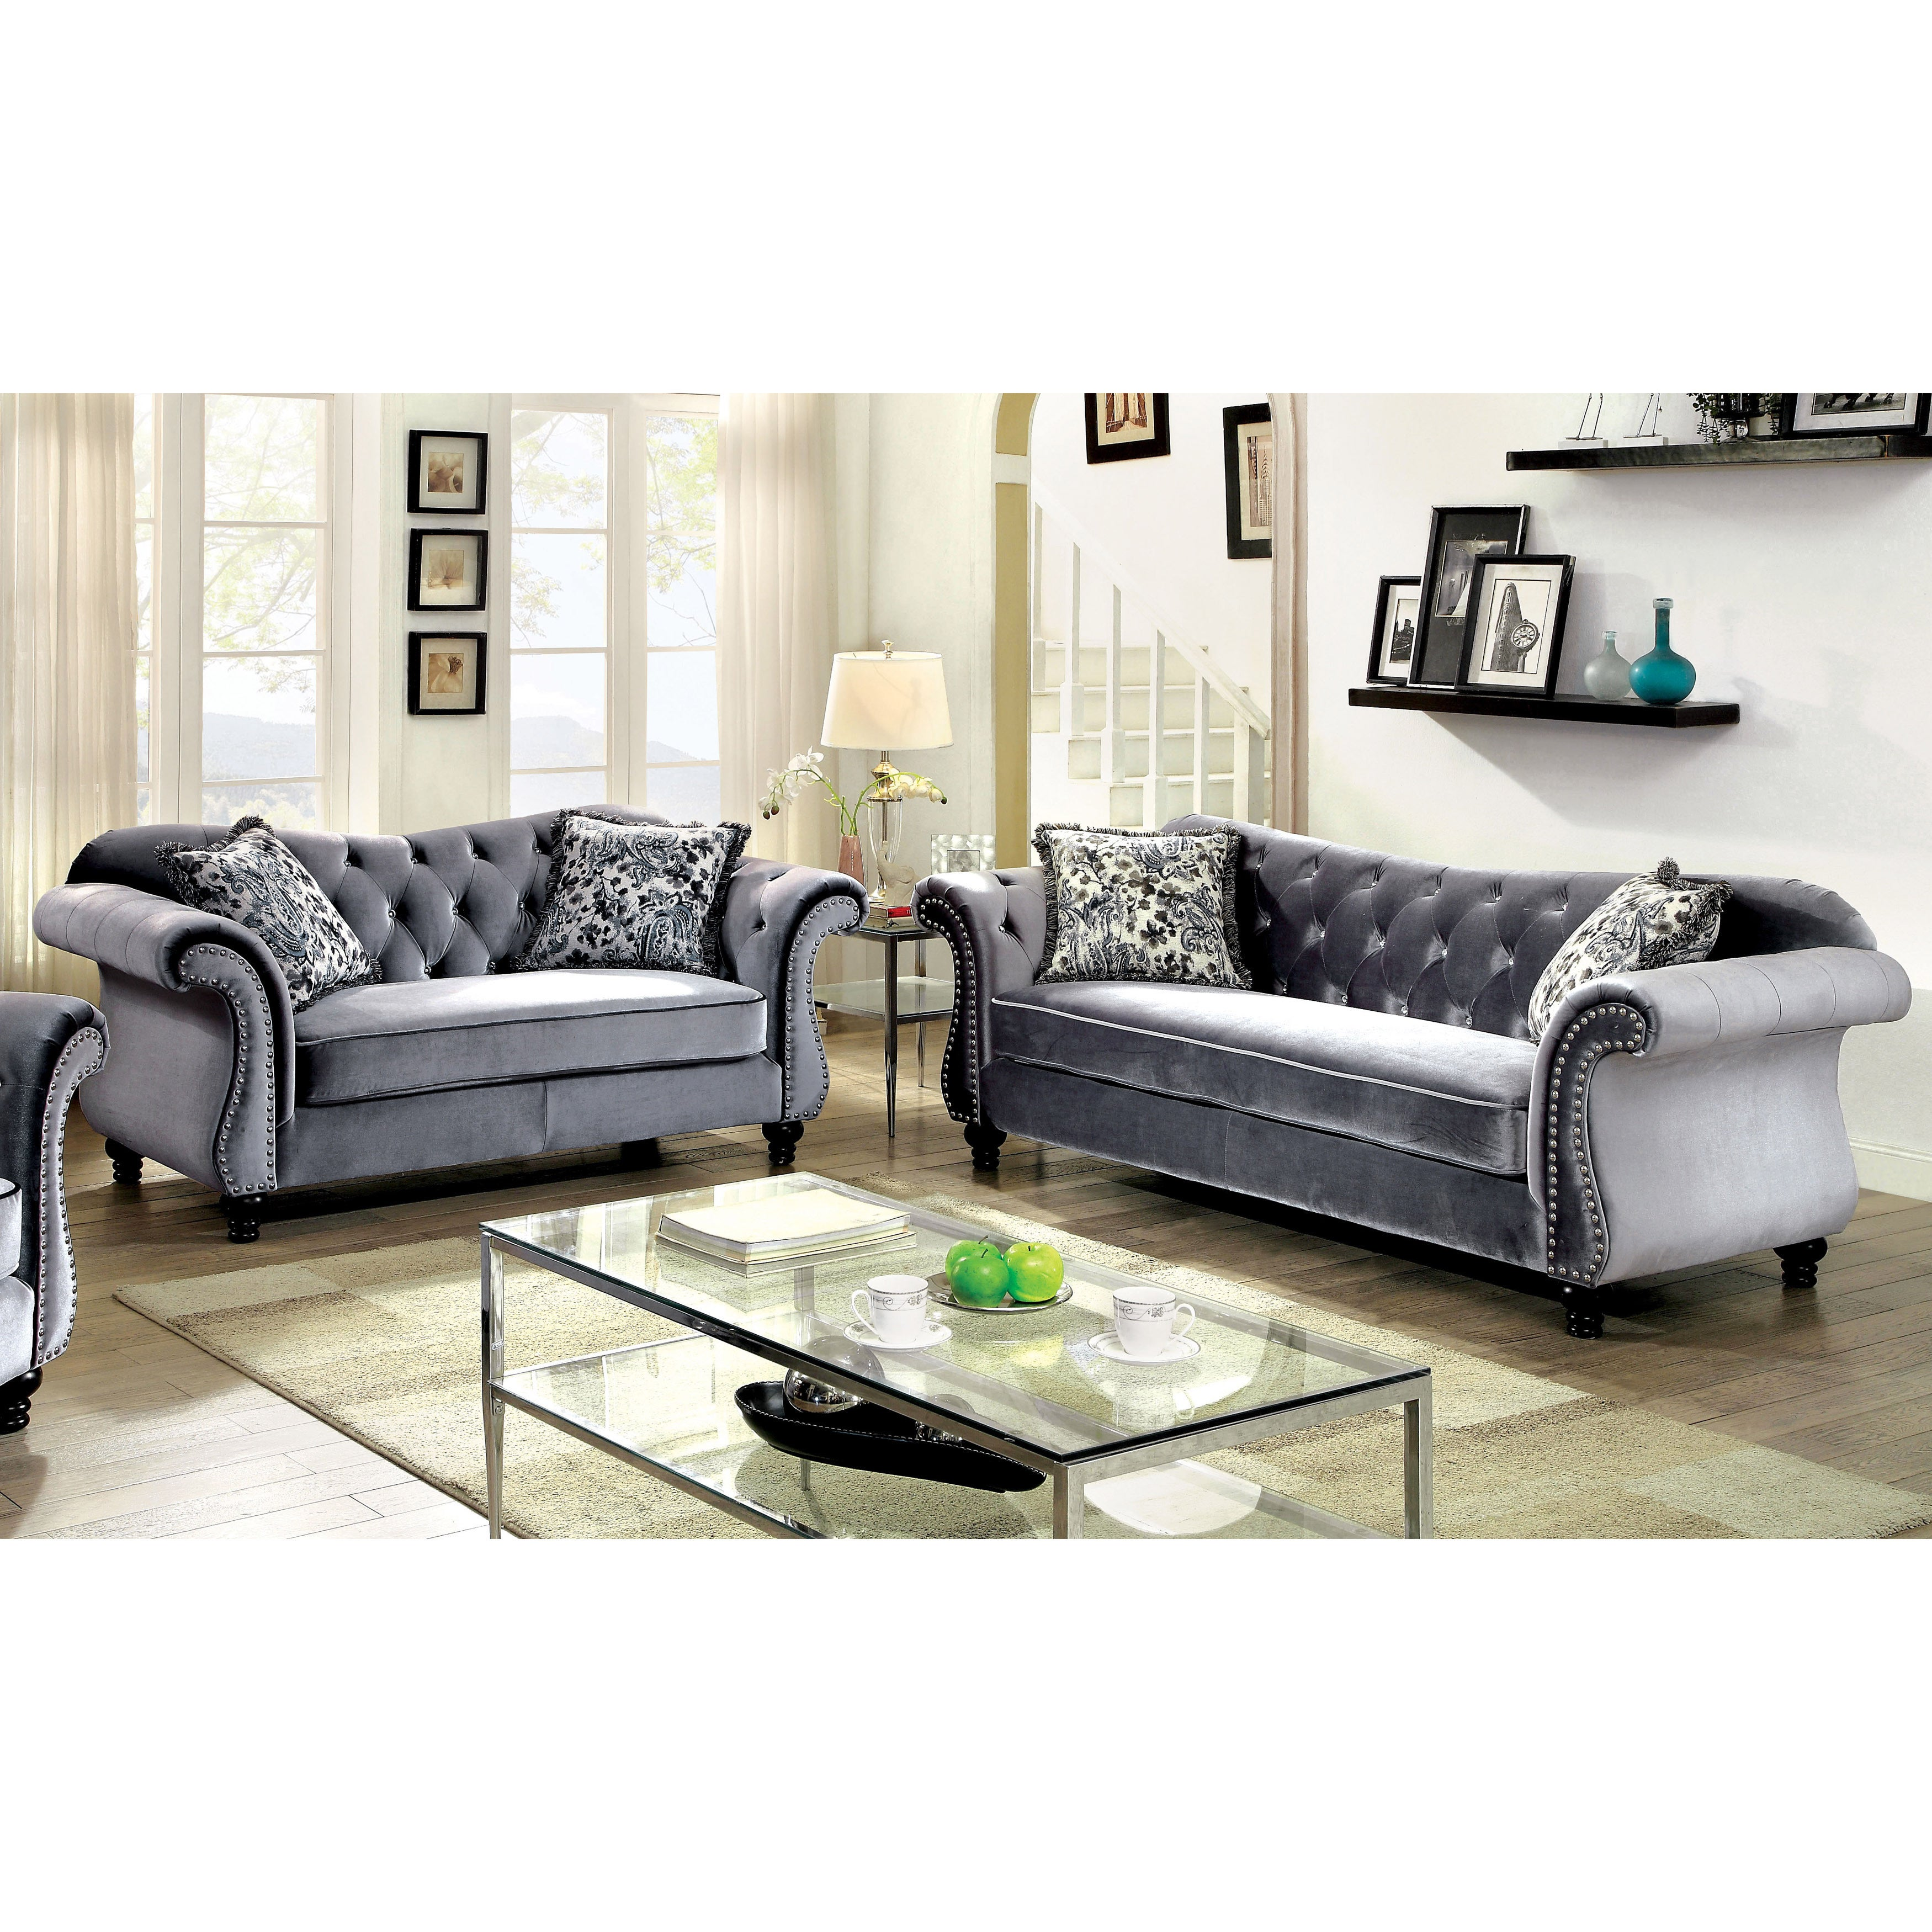 Furniture of America Dessie Traditional 3 piece Tufted Sofa Set